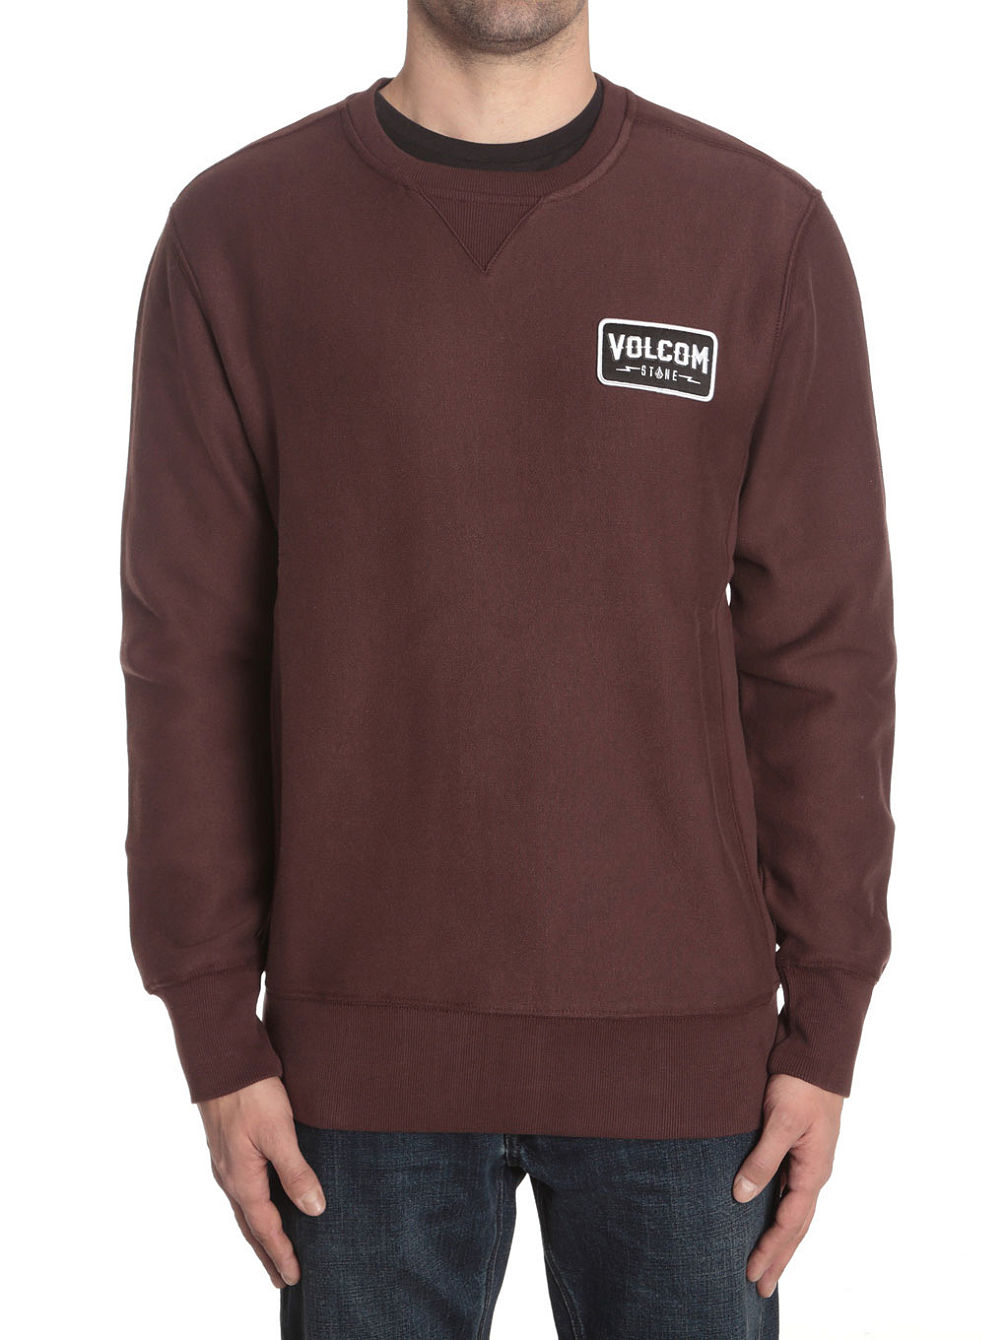 volcom-shop-crew-sweater